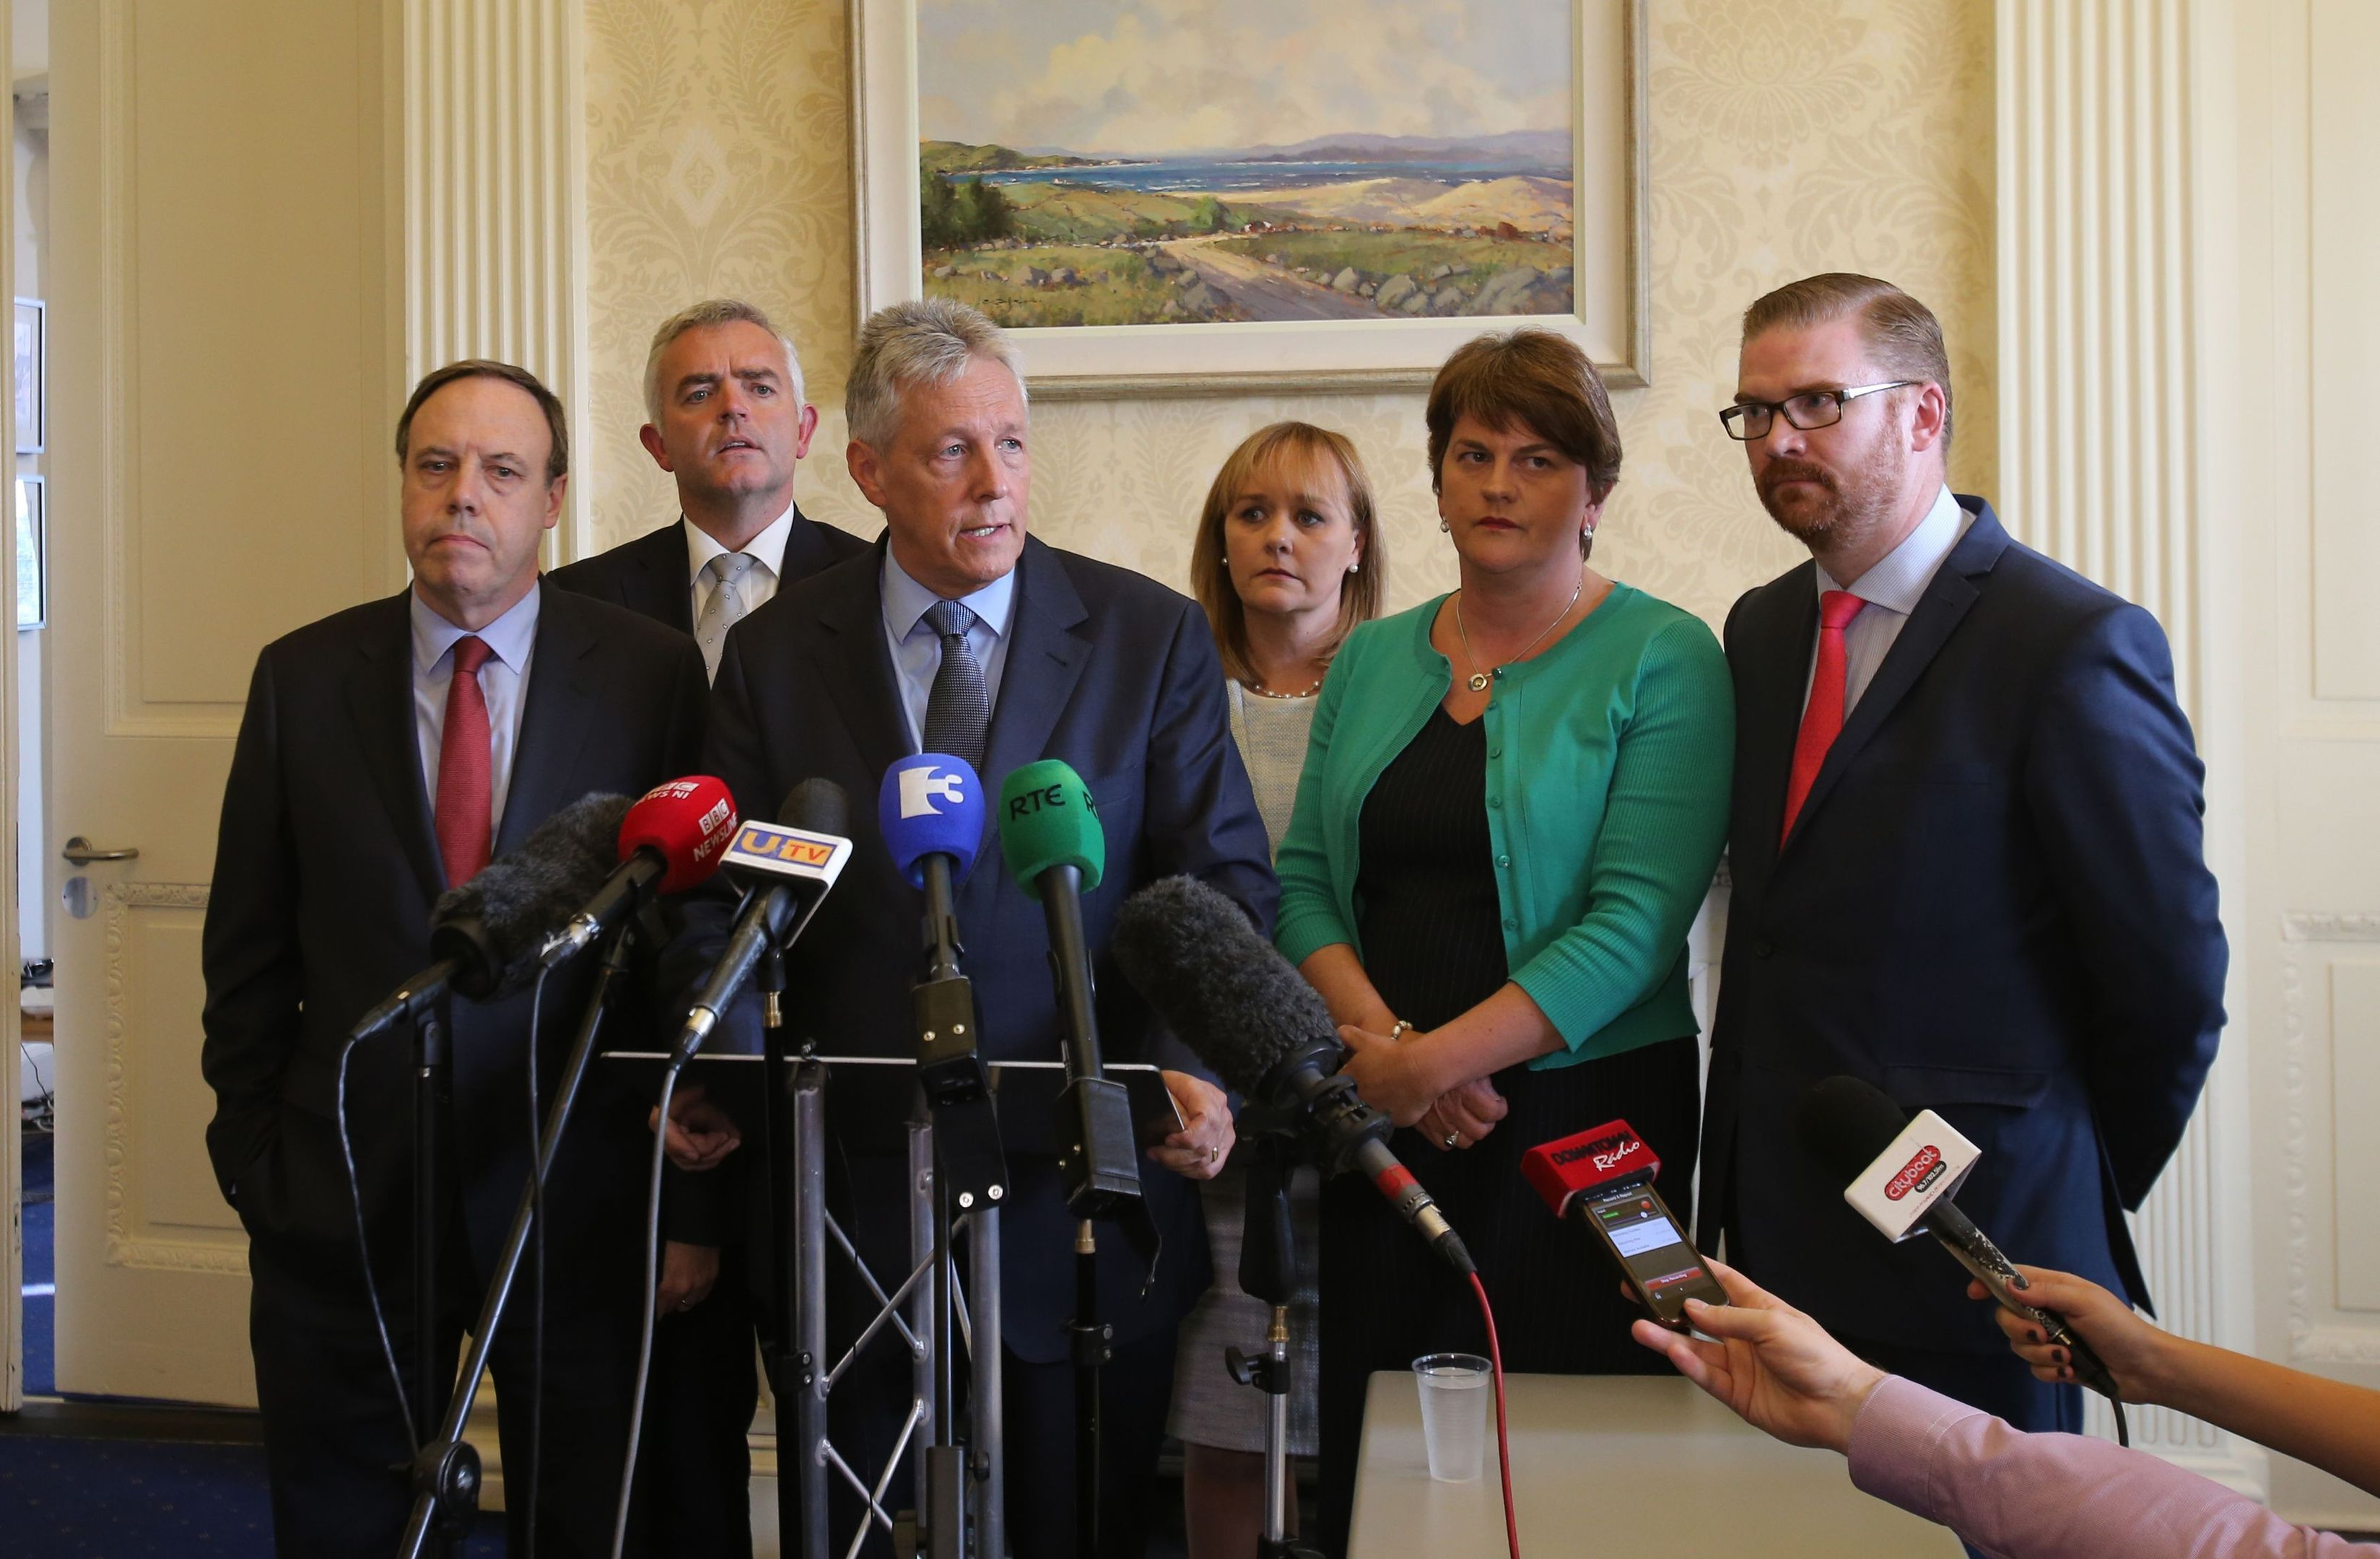 First Minister Peter Robinson at Stormont, Belfast, watched by Nigel Dodds, Johnathan Bell, Michelle Mcilveen, Arlene Foster and Simon Hamilton,  announces that he is standing aside, and the majority of his Democratic Unionist ministers are to resign, with party colleague Arlene Foster to take over as acting First Minister. PRESS ASSOCIATION Photo. Picture date: Thursday September 10, 2015. The surprise move from the DUP leader comes amid an Assembly crisis in the wake of a murder linked to the IRA murder. See PA story ULSTER Politics. Photo credit should read: Niall Carson/PA Wire